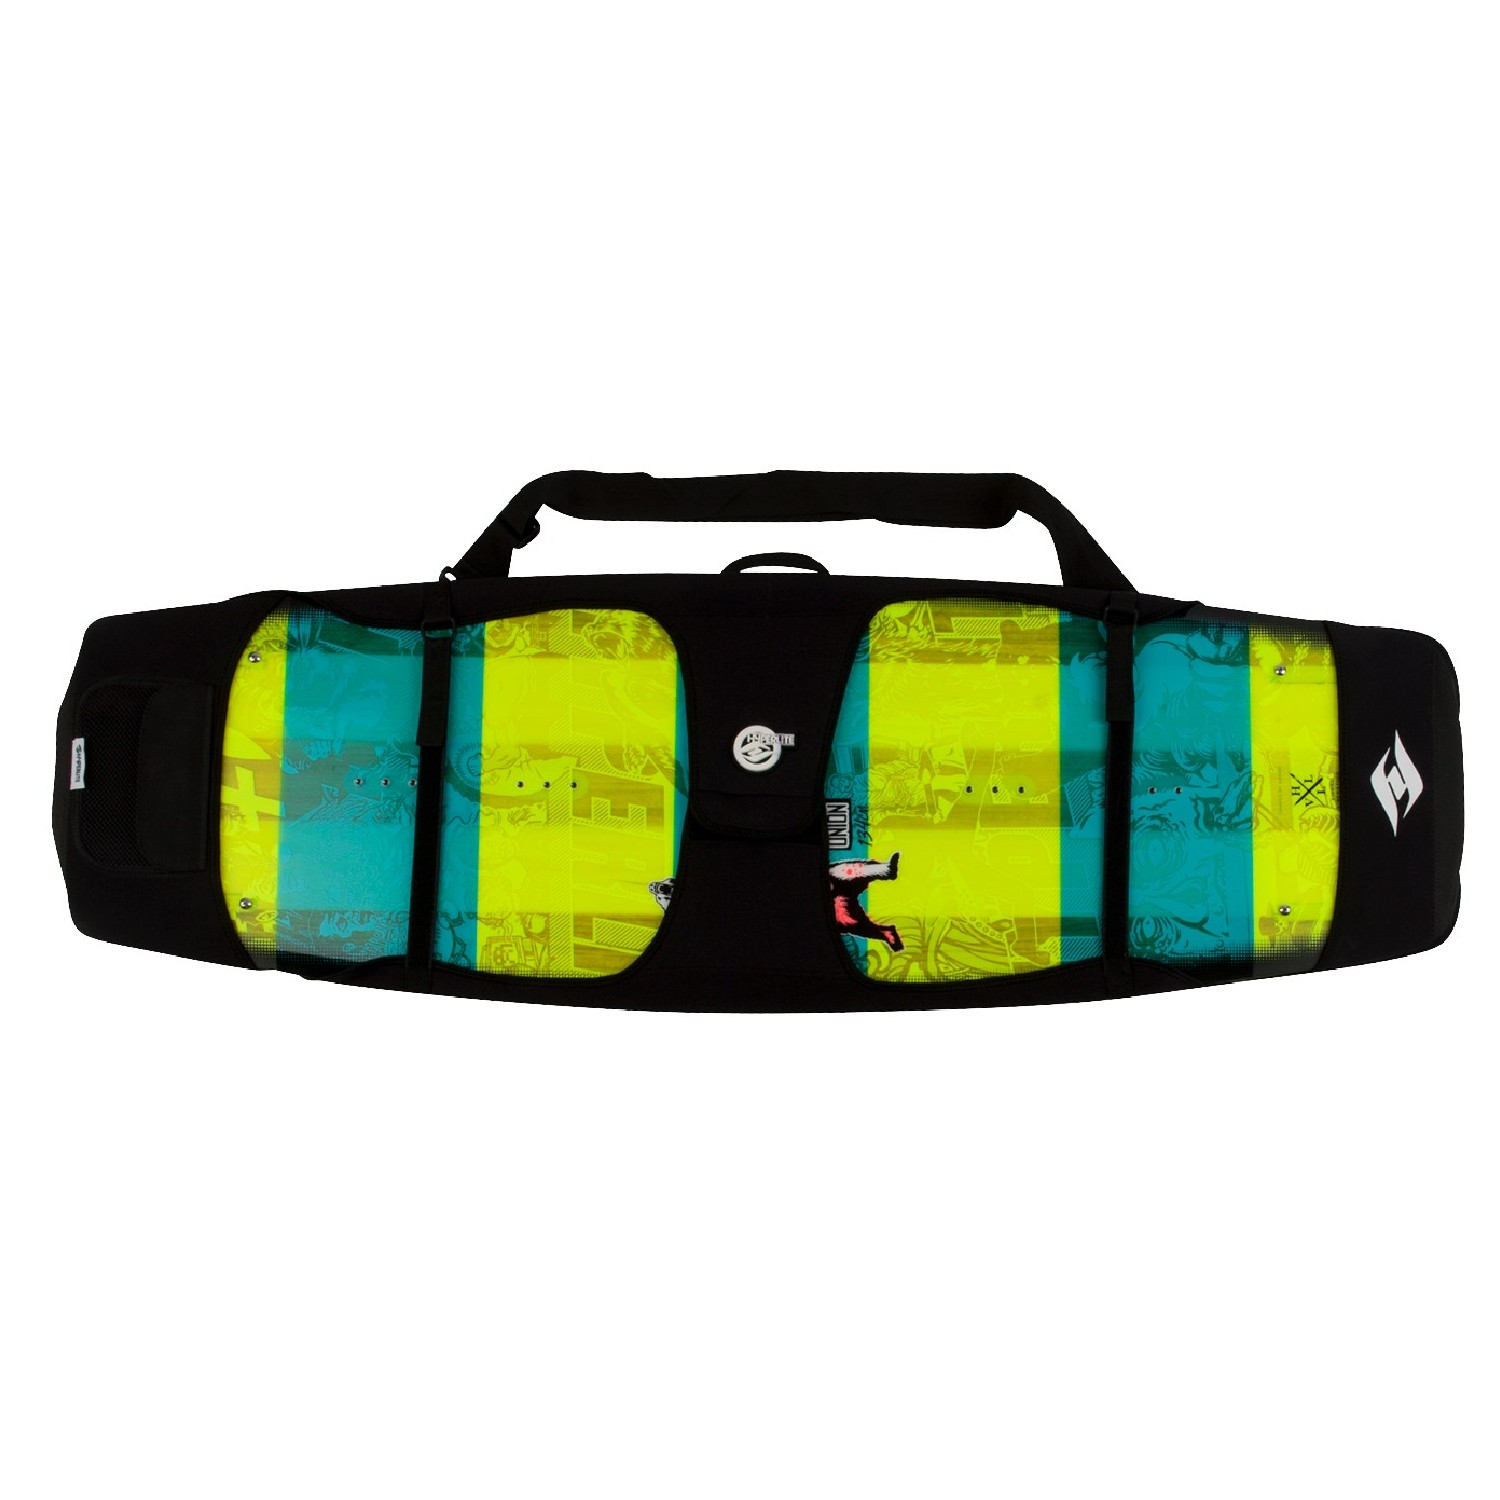 WAKEBOARD RUBBER WRAP 131-147 HYPERLITE 2019